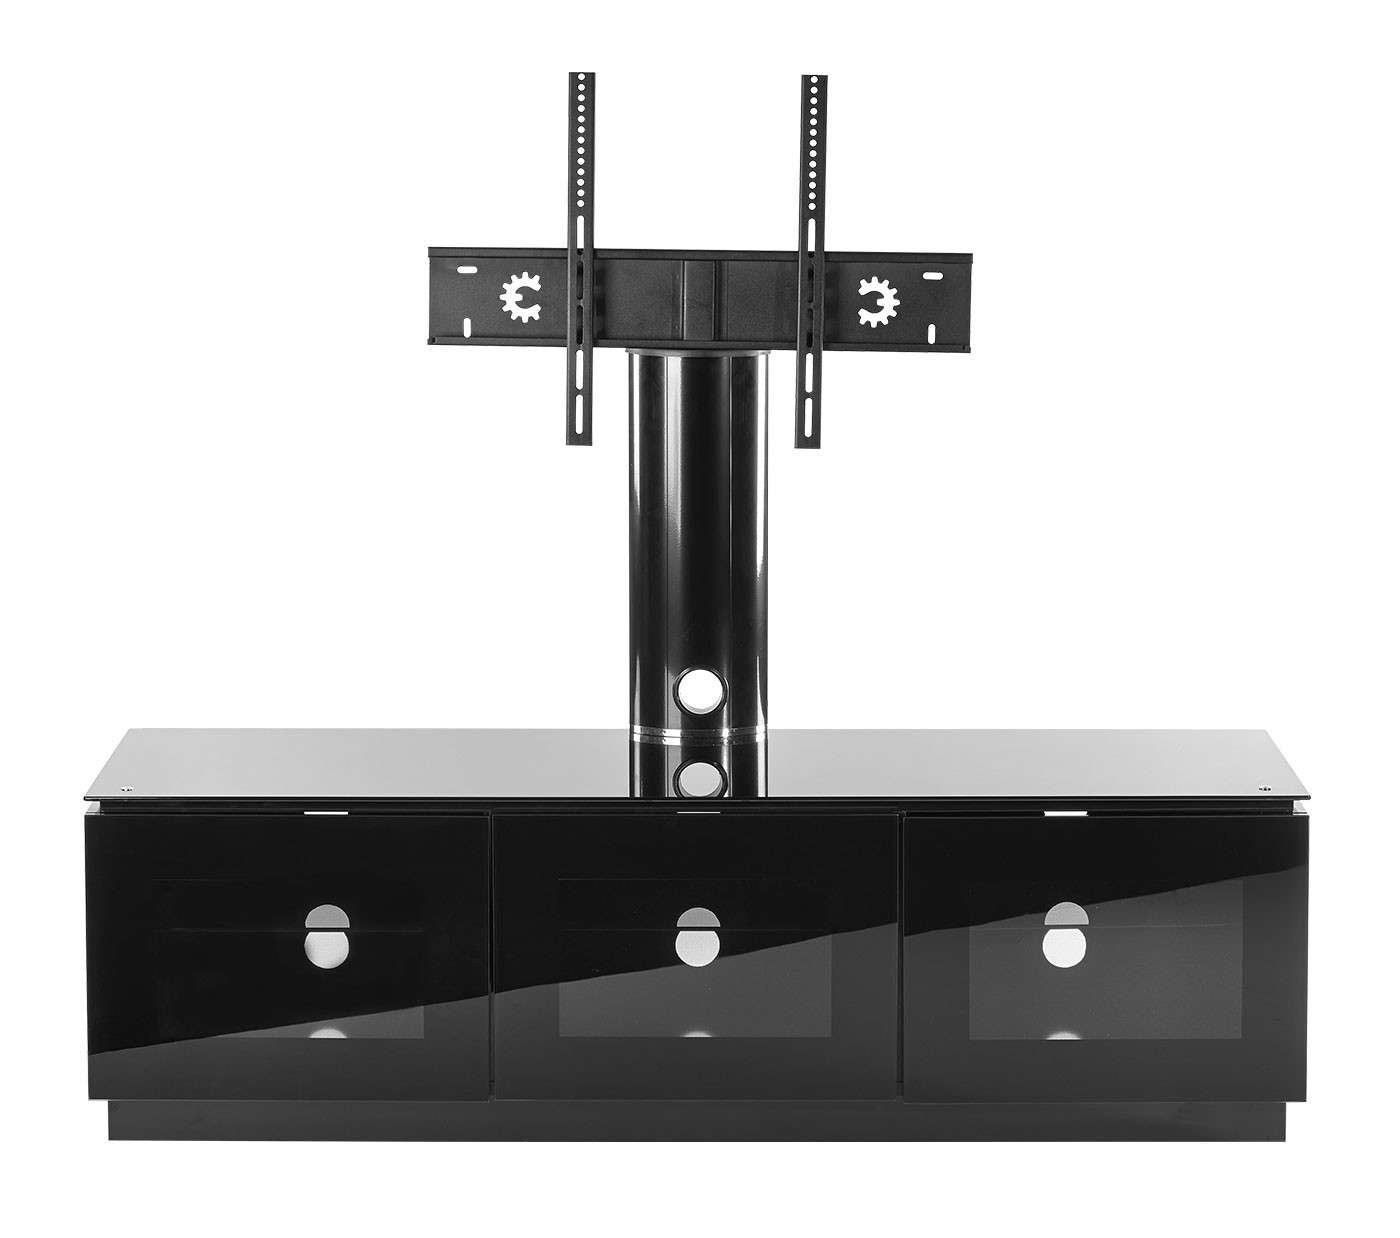 Black Tv Cabinet With Mount For Up To 65 Inch Tv | Mmt D1500 Xarm In Black Gloss Tv Stands (View 7 of 15)